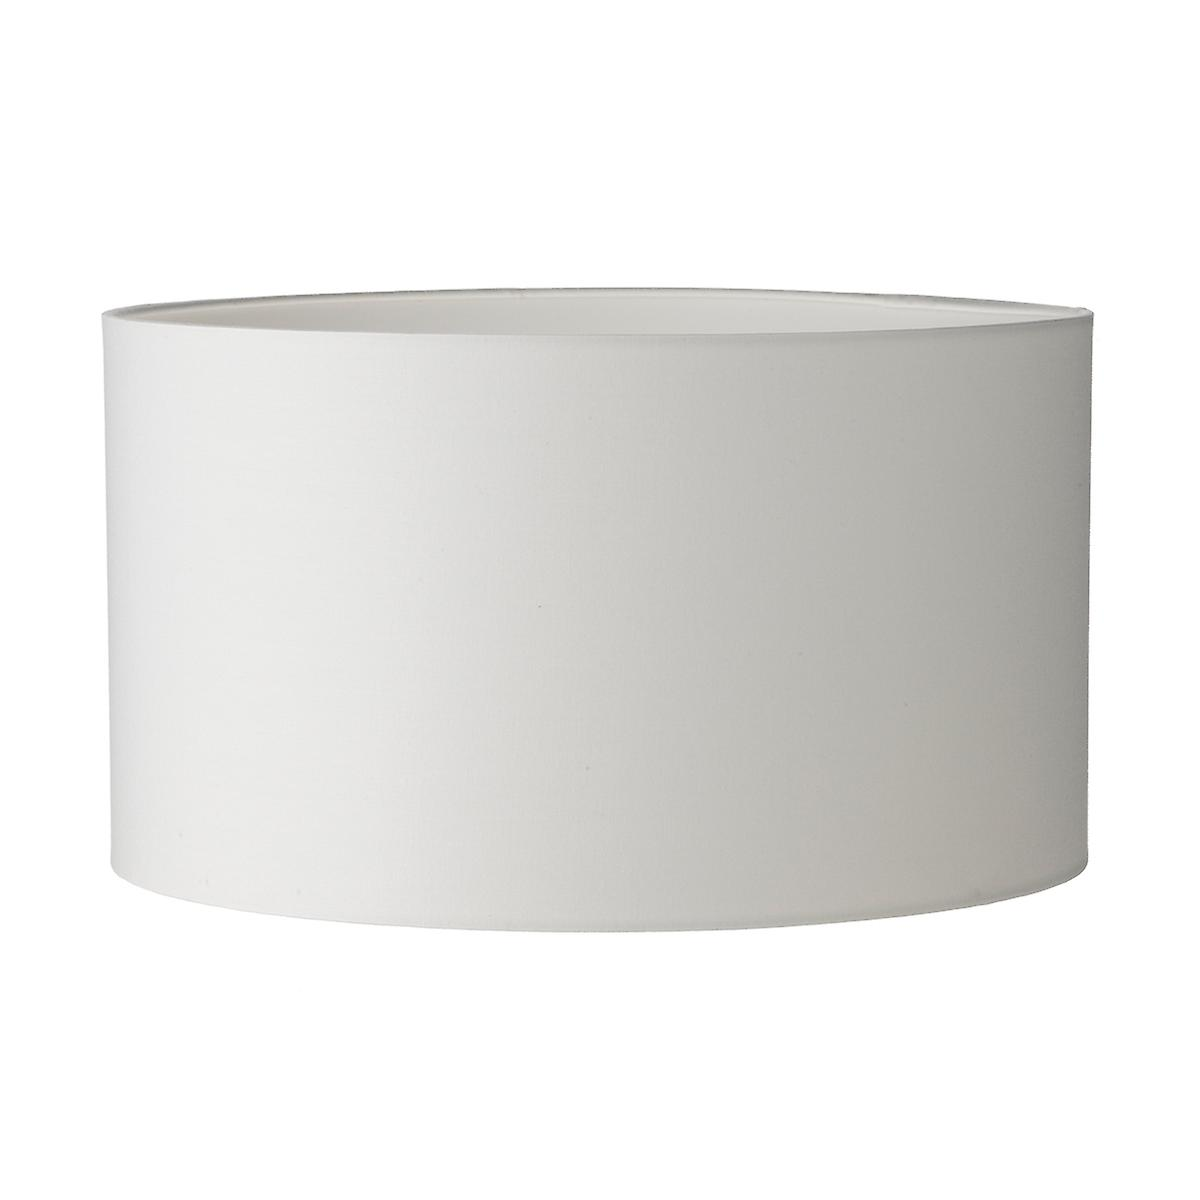 Dar S1056 Tuscan Cream Shade For Use With A Tuscan Floor Lamp